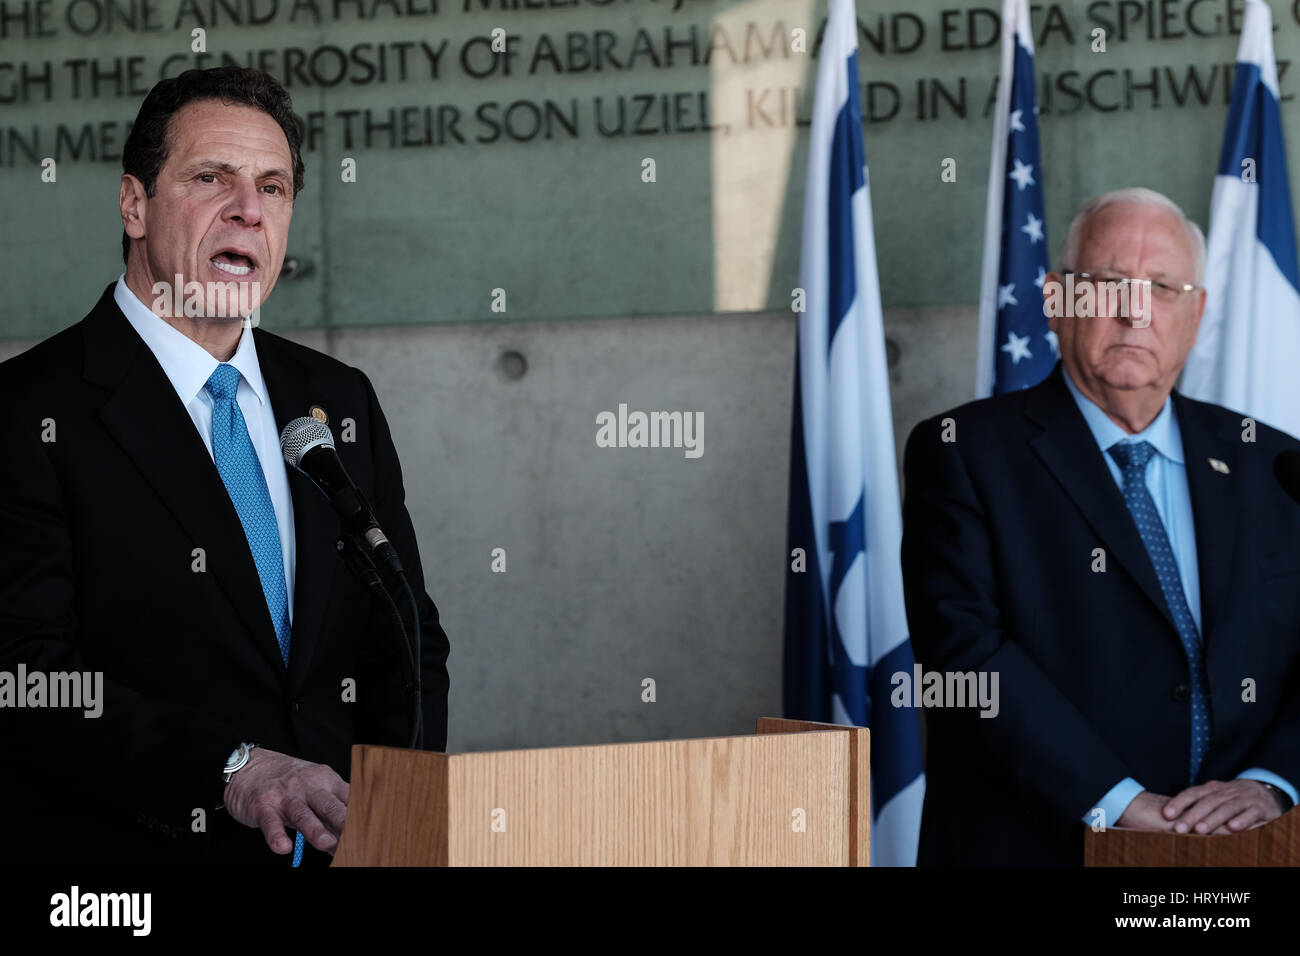 Jerusalem, Israel. 5th March, 2017. Governor of New York, ANDREW CUOMO, and the President of the State of Israel, - Stock Image